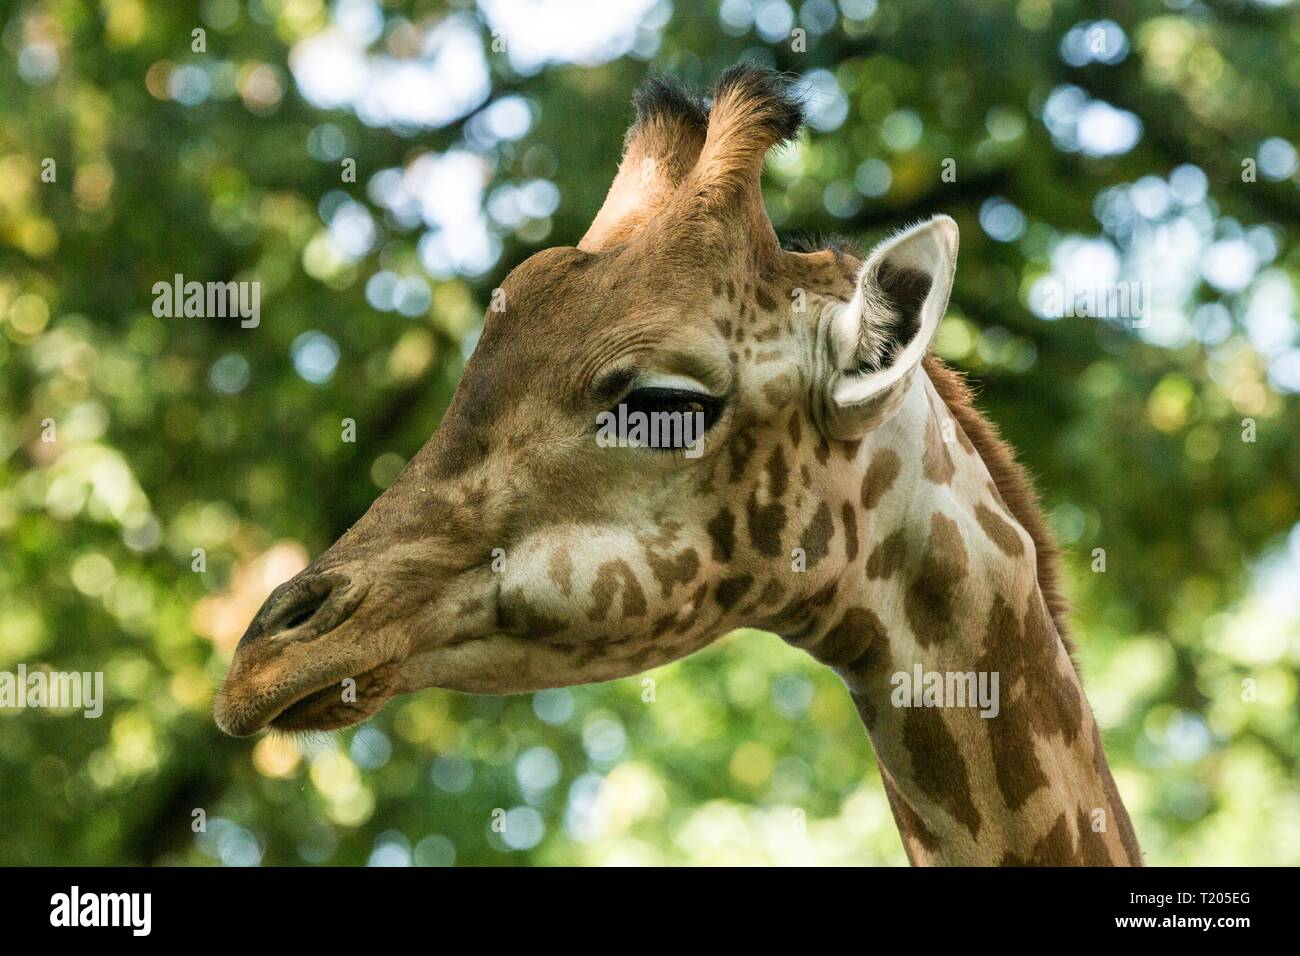 The giraffe (Giraffa camelopardalis), African even-toed ungulate mammal, the tallest of all extant land-living animal species, portrait of beautiful a - Stock Image